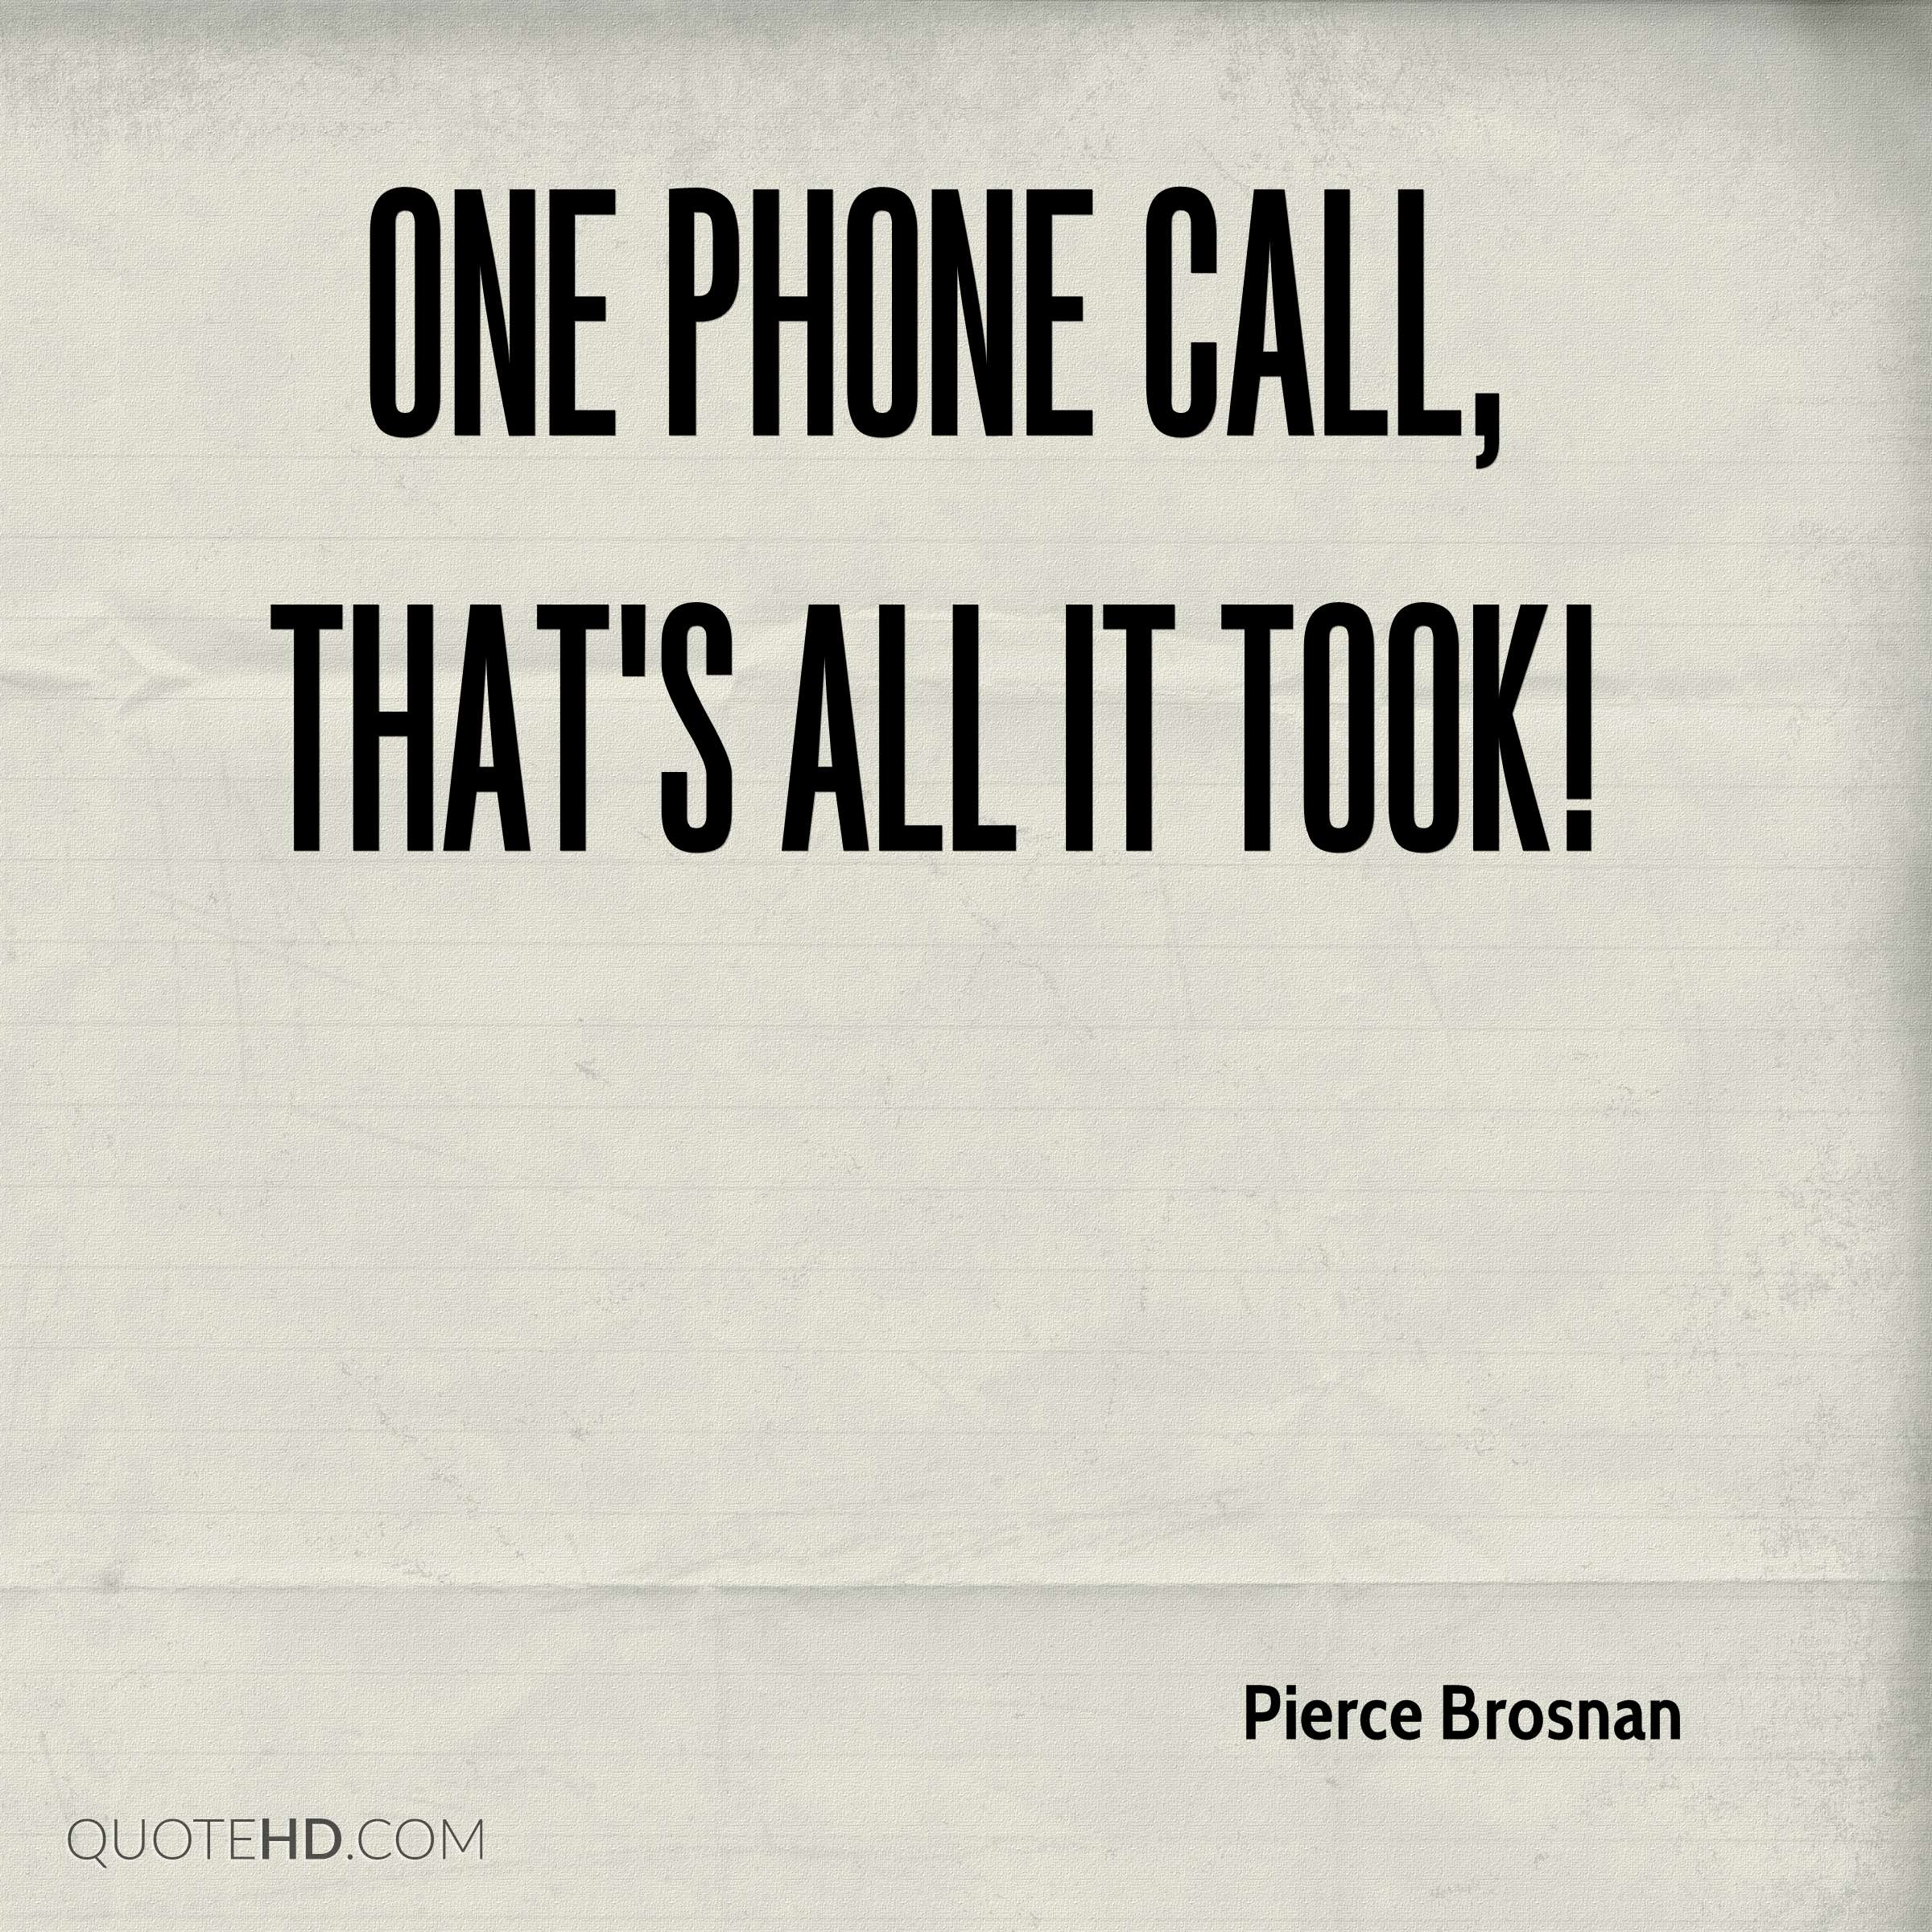 Phone Quotes Inspiration Pierce Brosnan Quotes  Quotehd